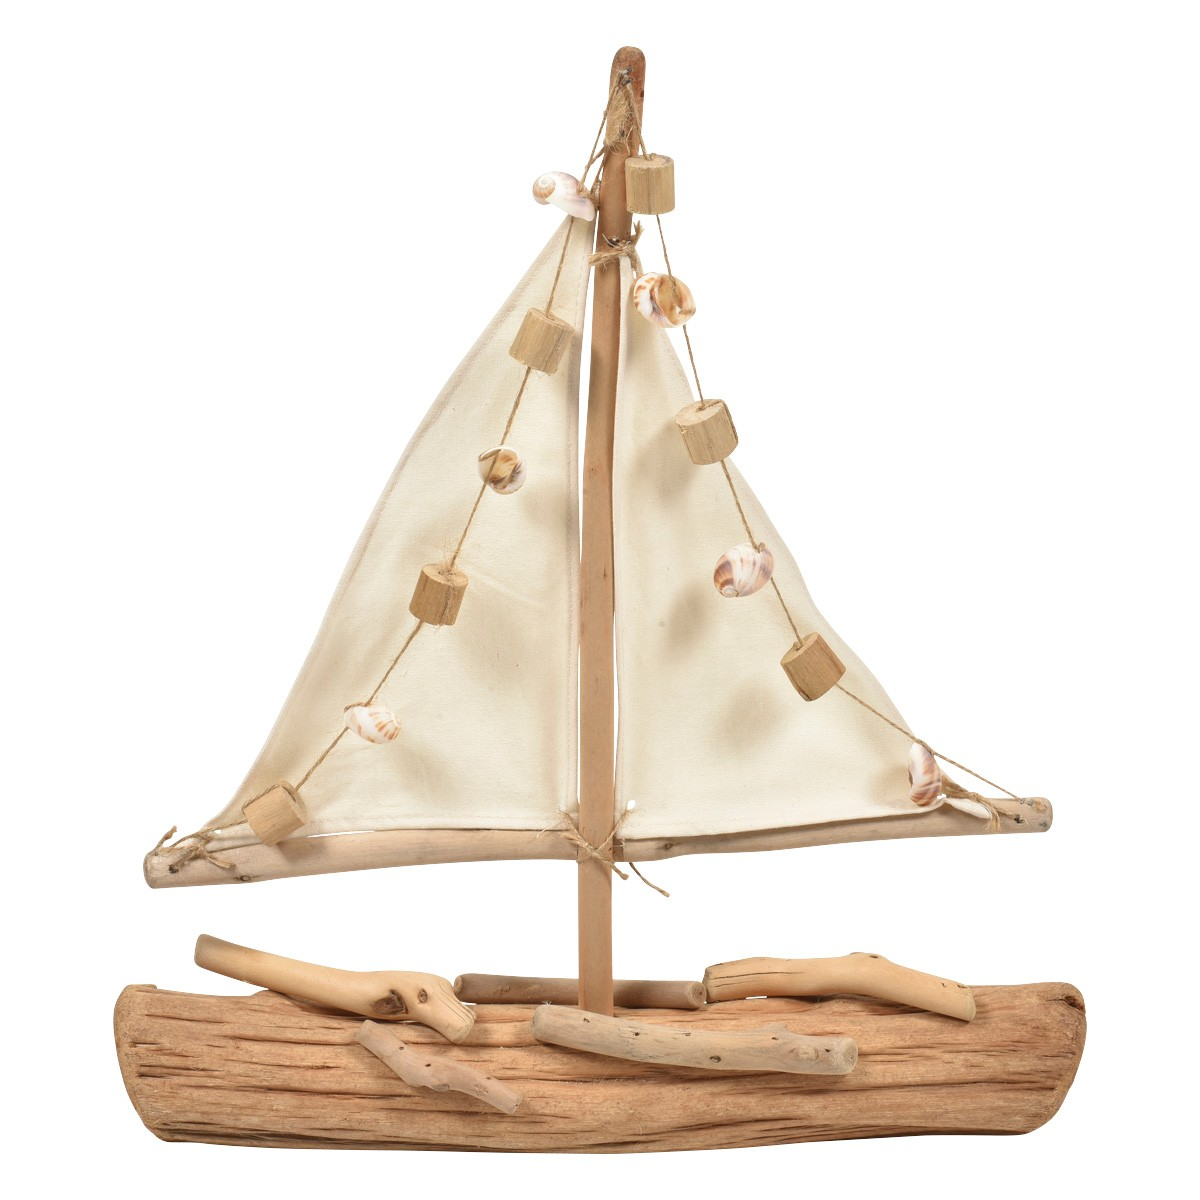 Colusa Canvas & Drfitwood Boat Sculpture, Large